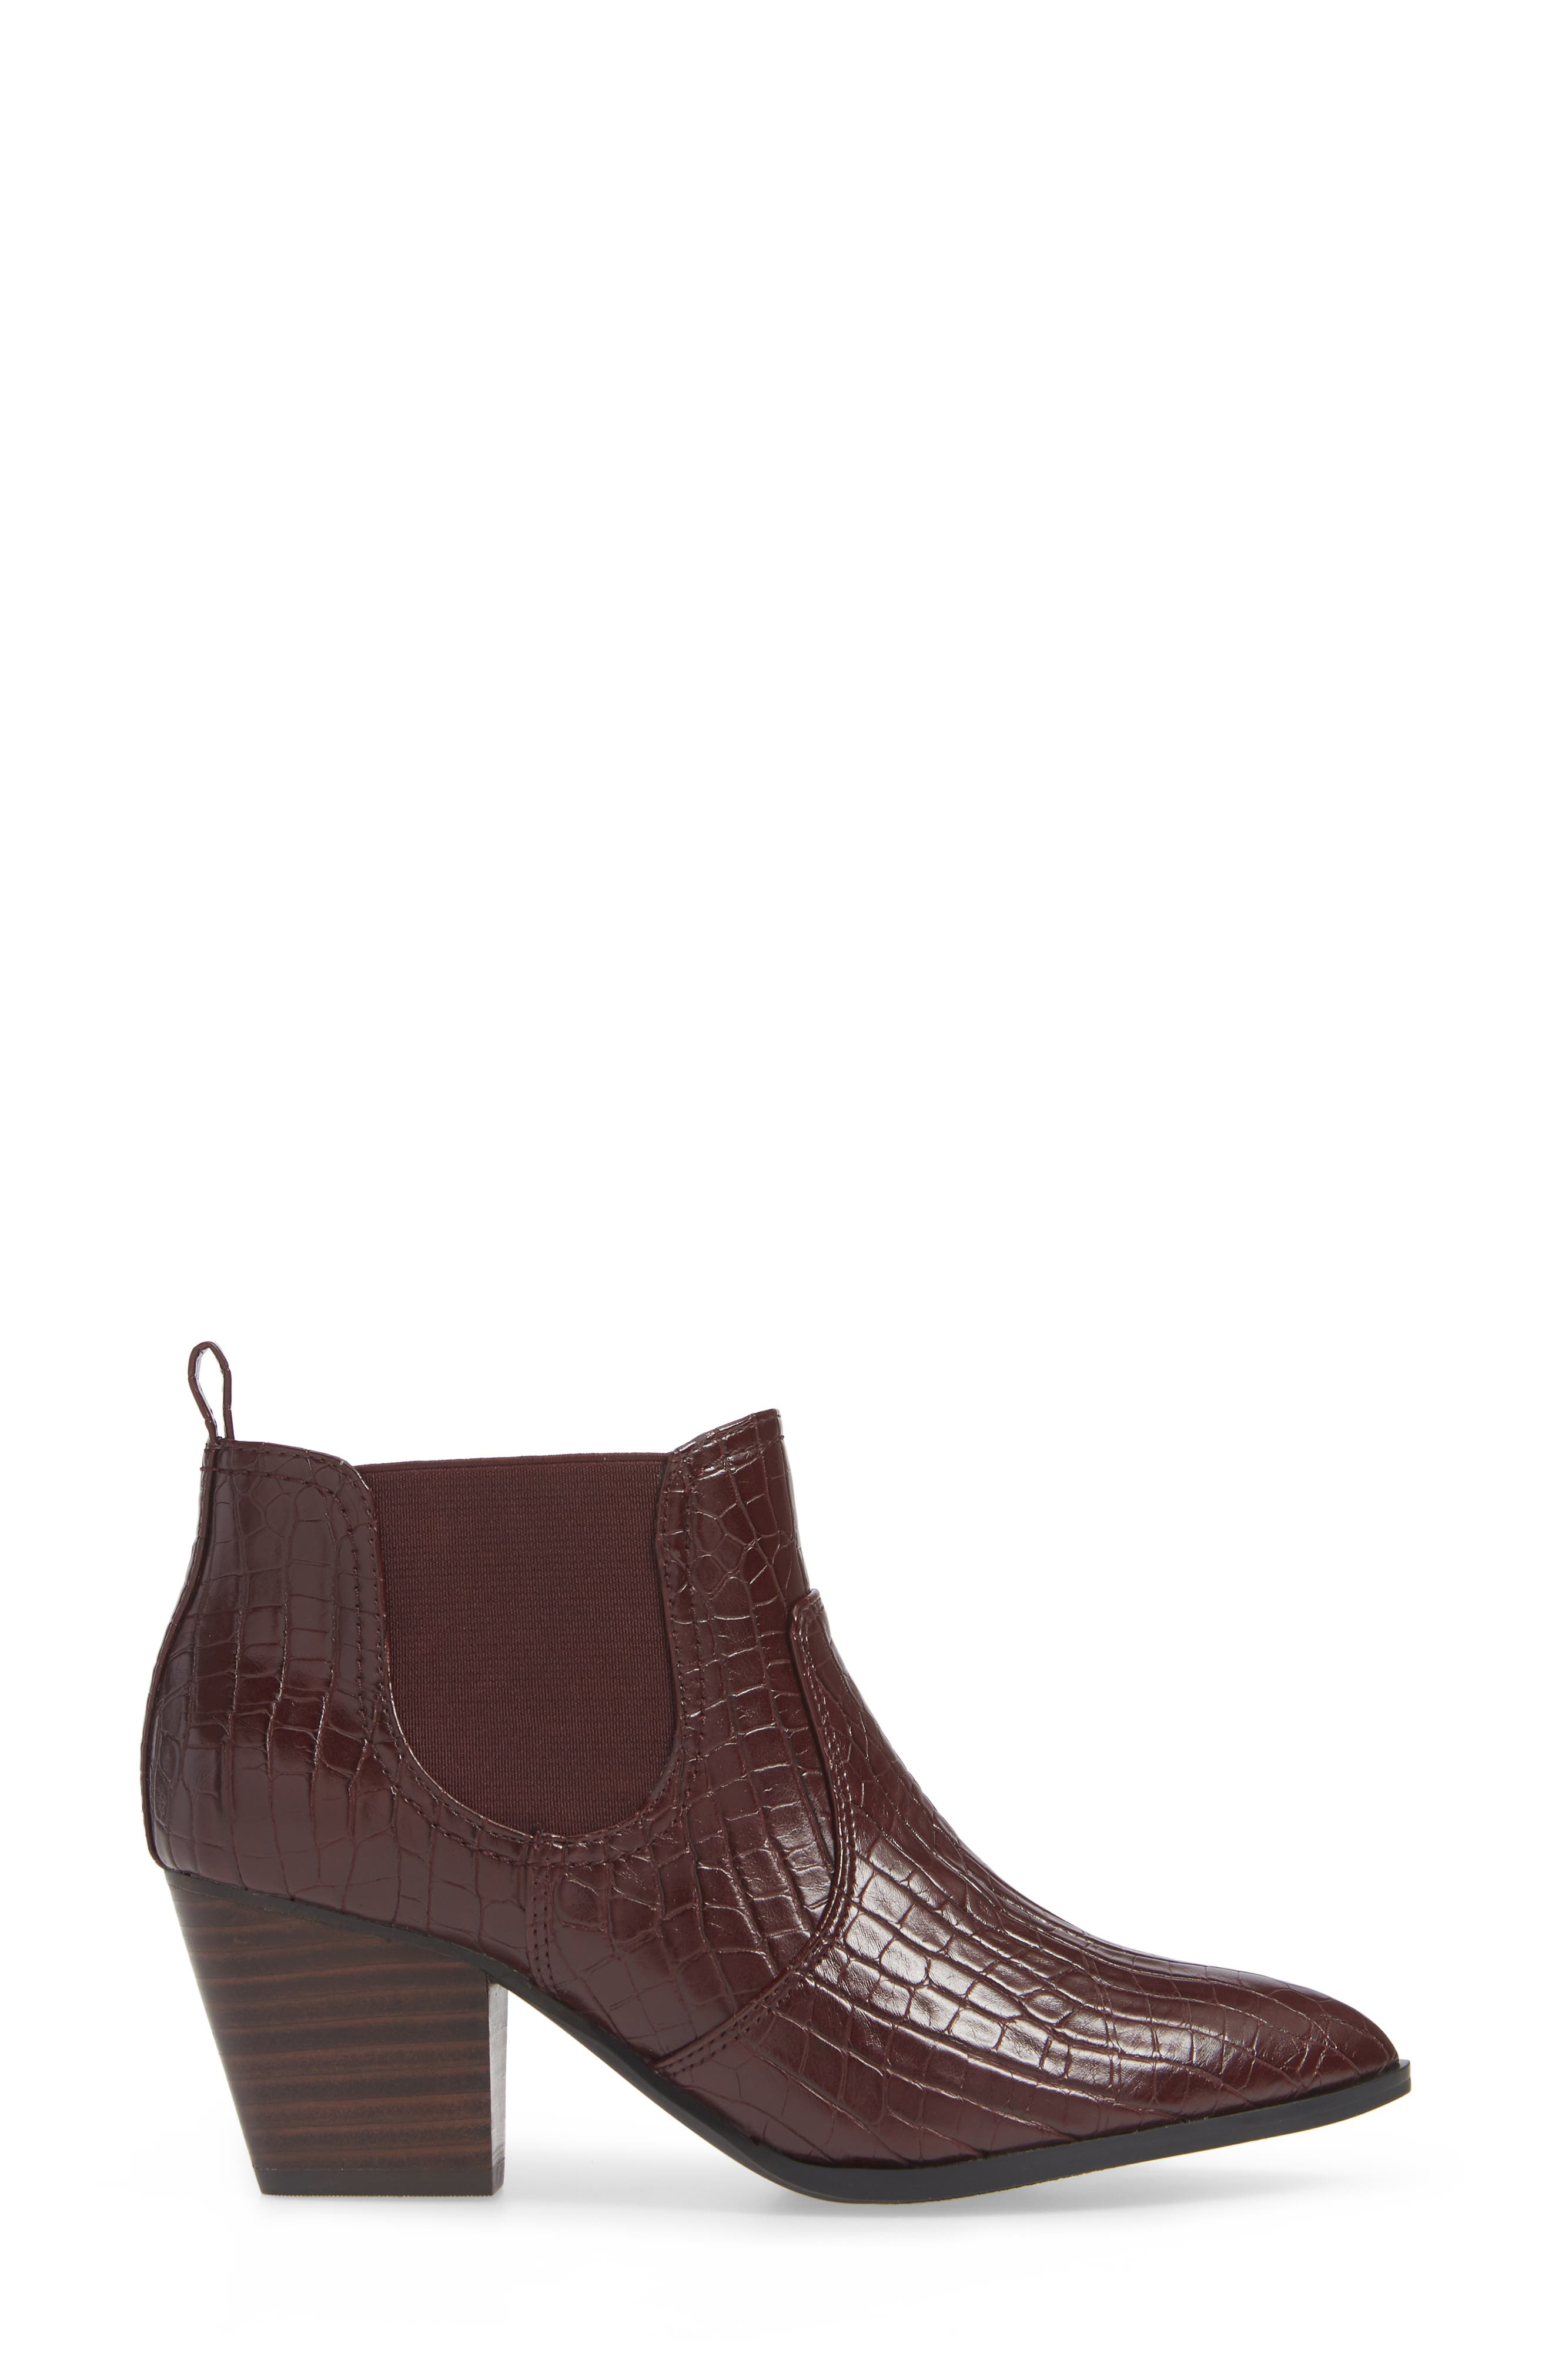 Emerson II Chelsea Bootie,                             Alternate thumbnail 3, color,                             BURGUNDY